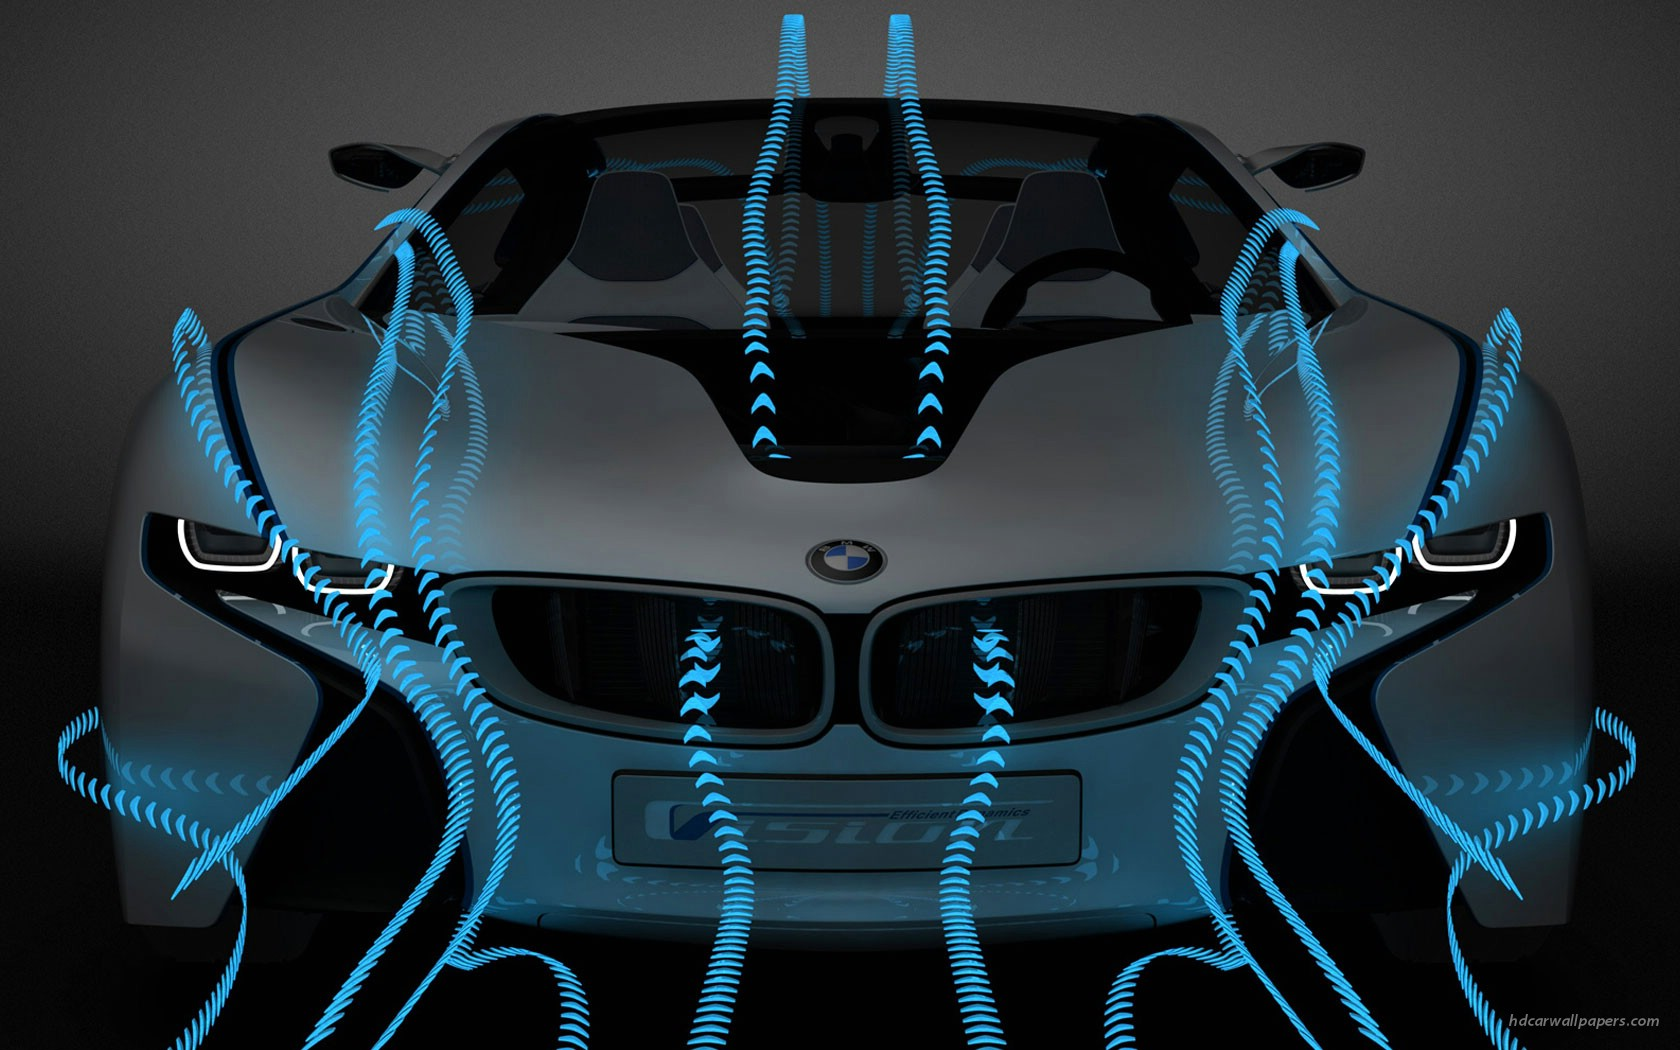 BMW Vision Efficient Dynamics Concept 8 222.73 Kb